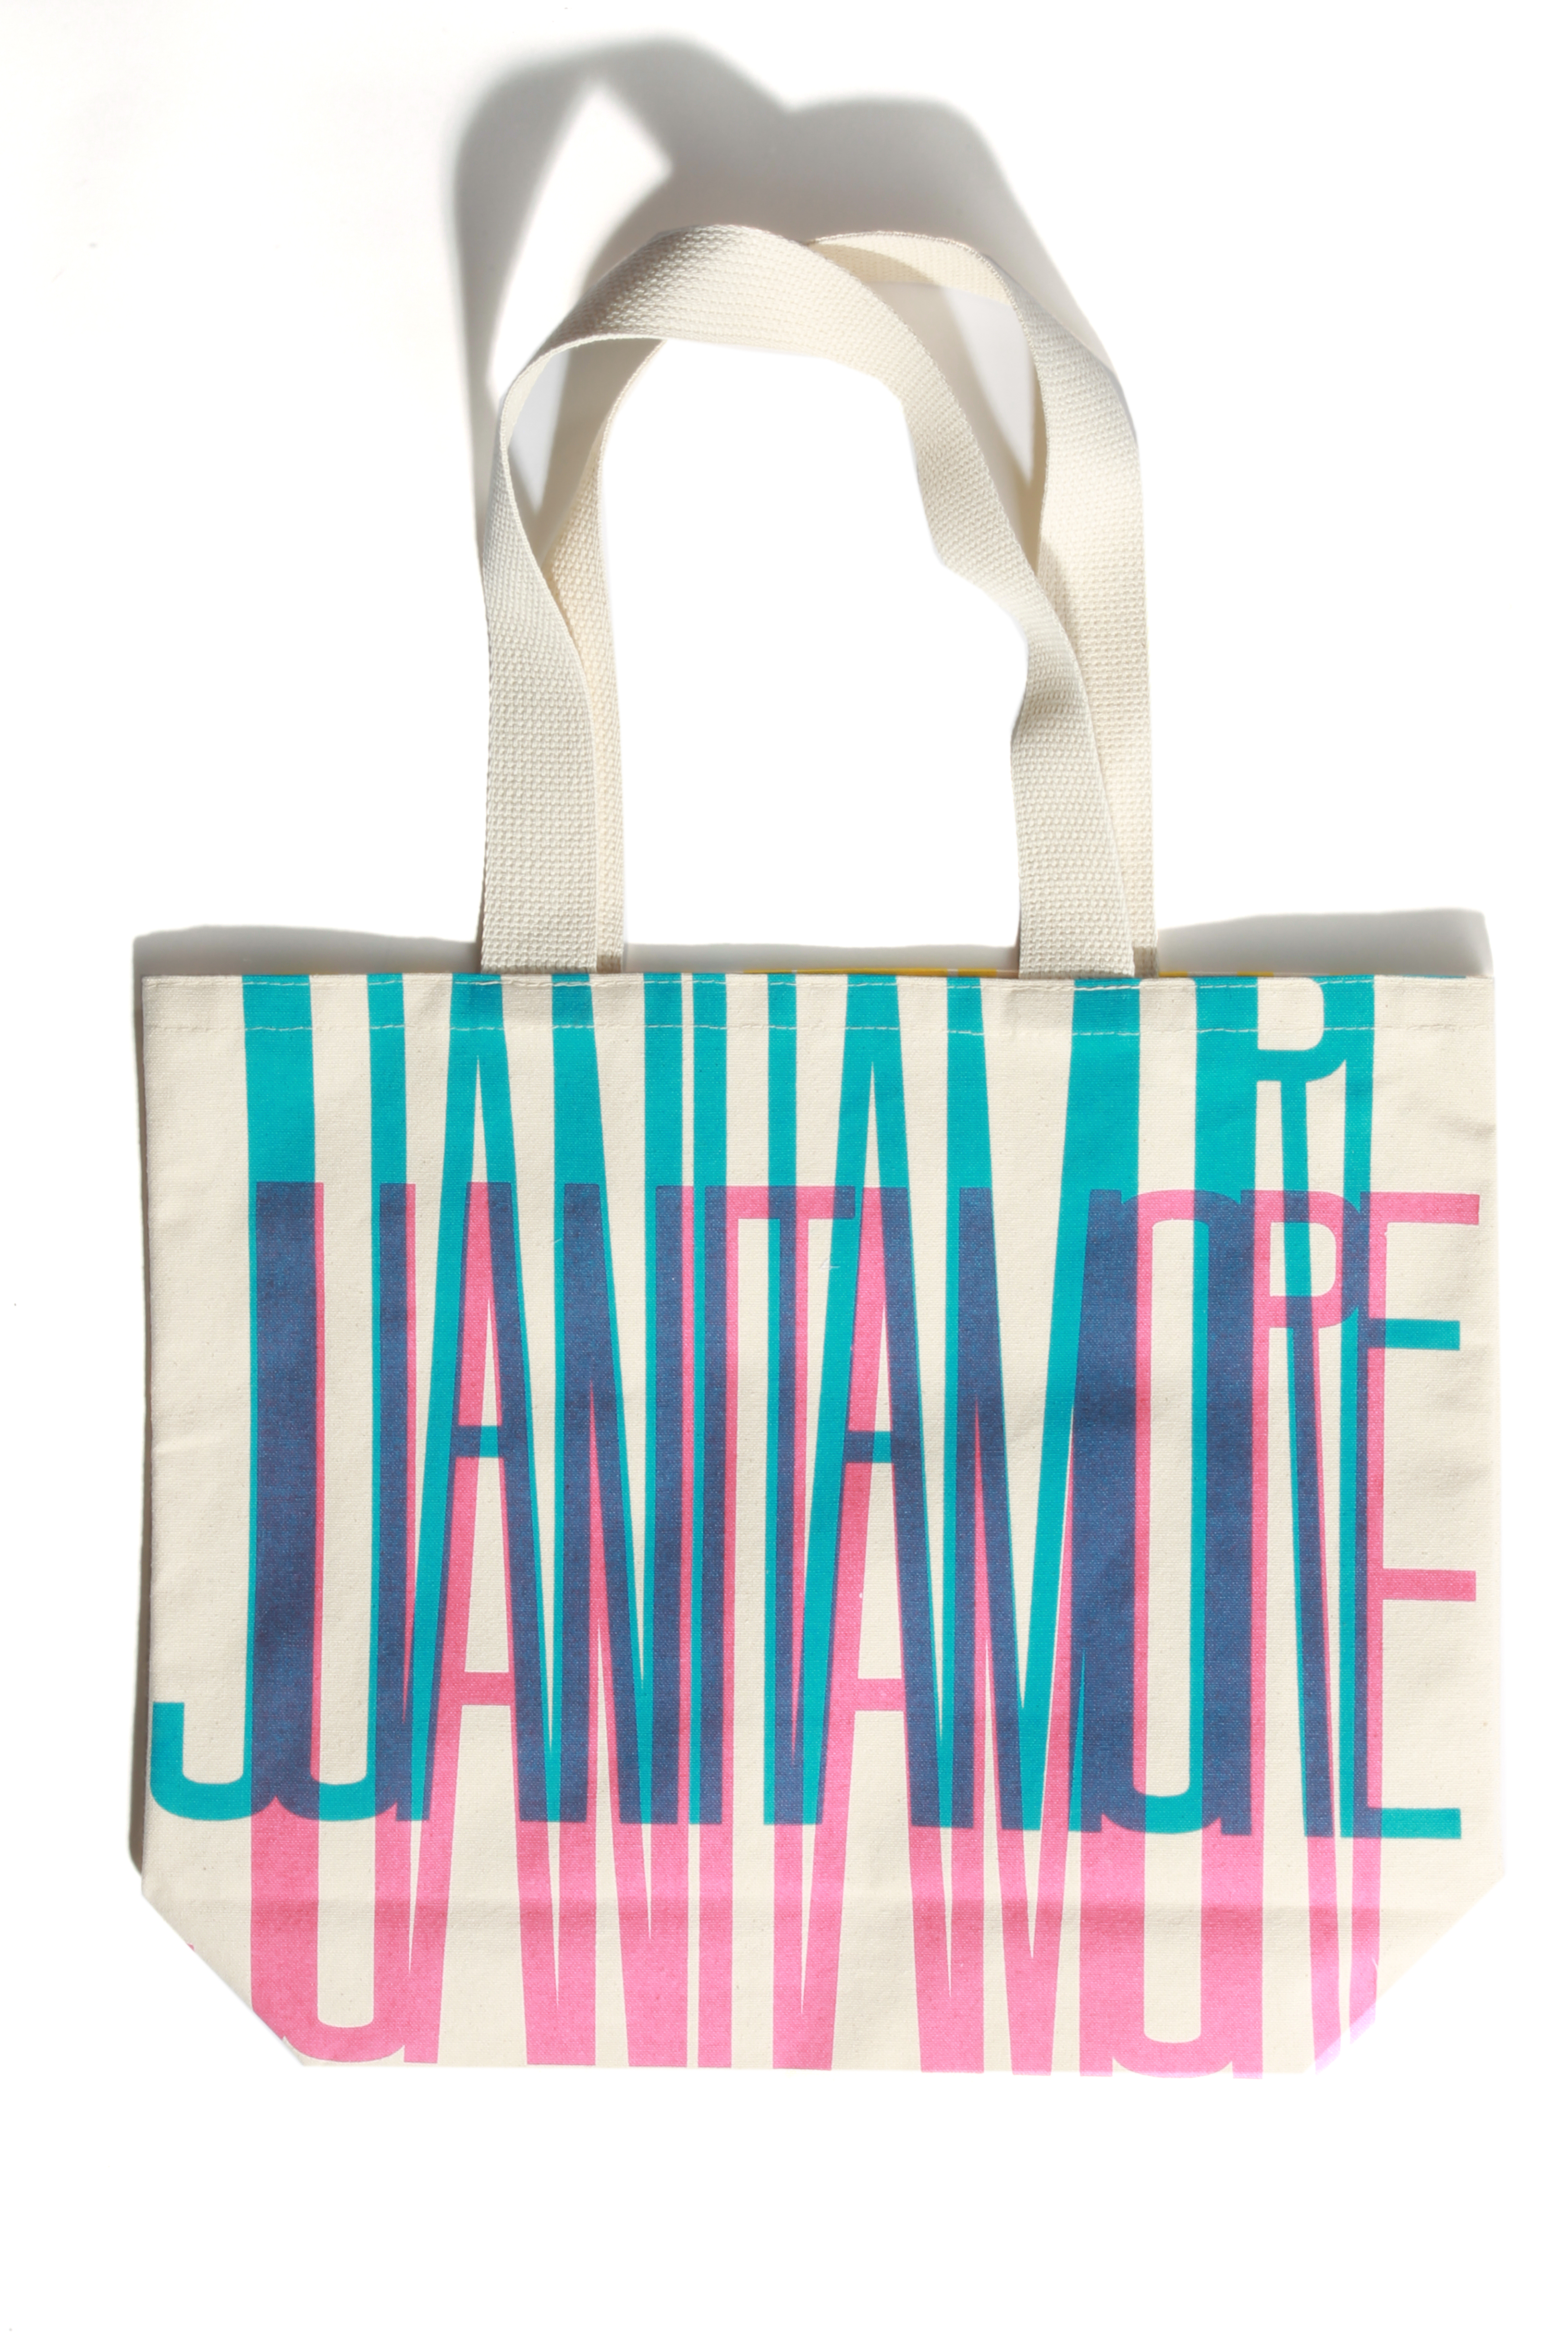 A winning tote, designed by Jiawei Tang. Photo by Bob Toy.